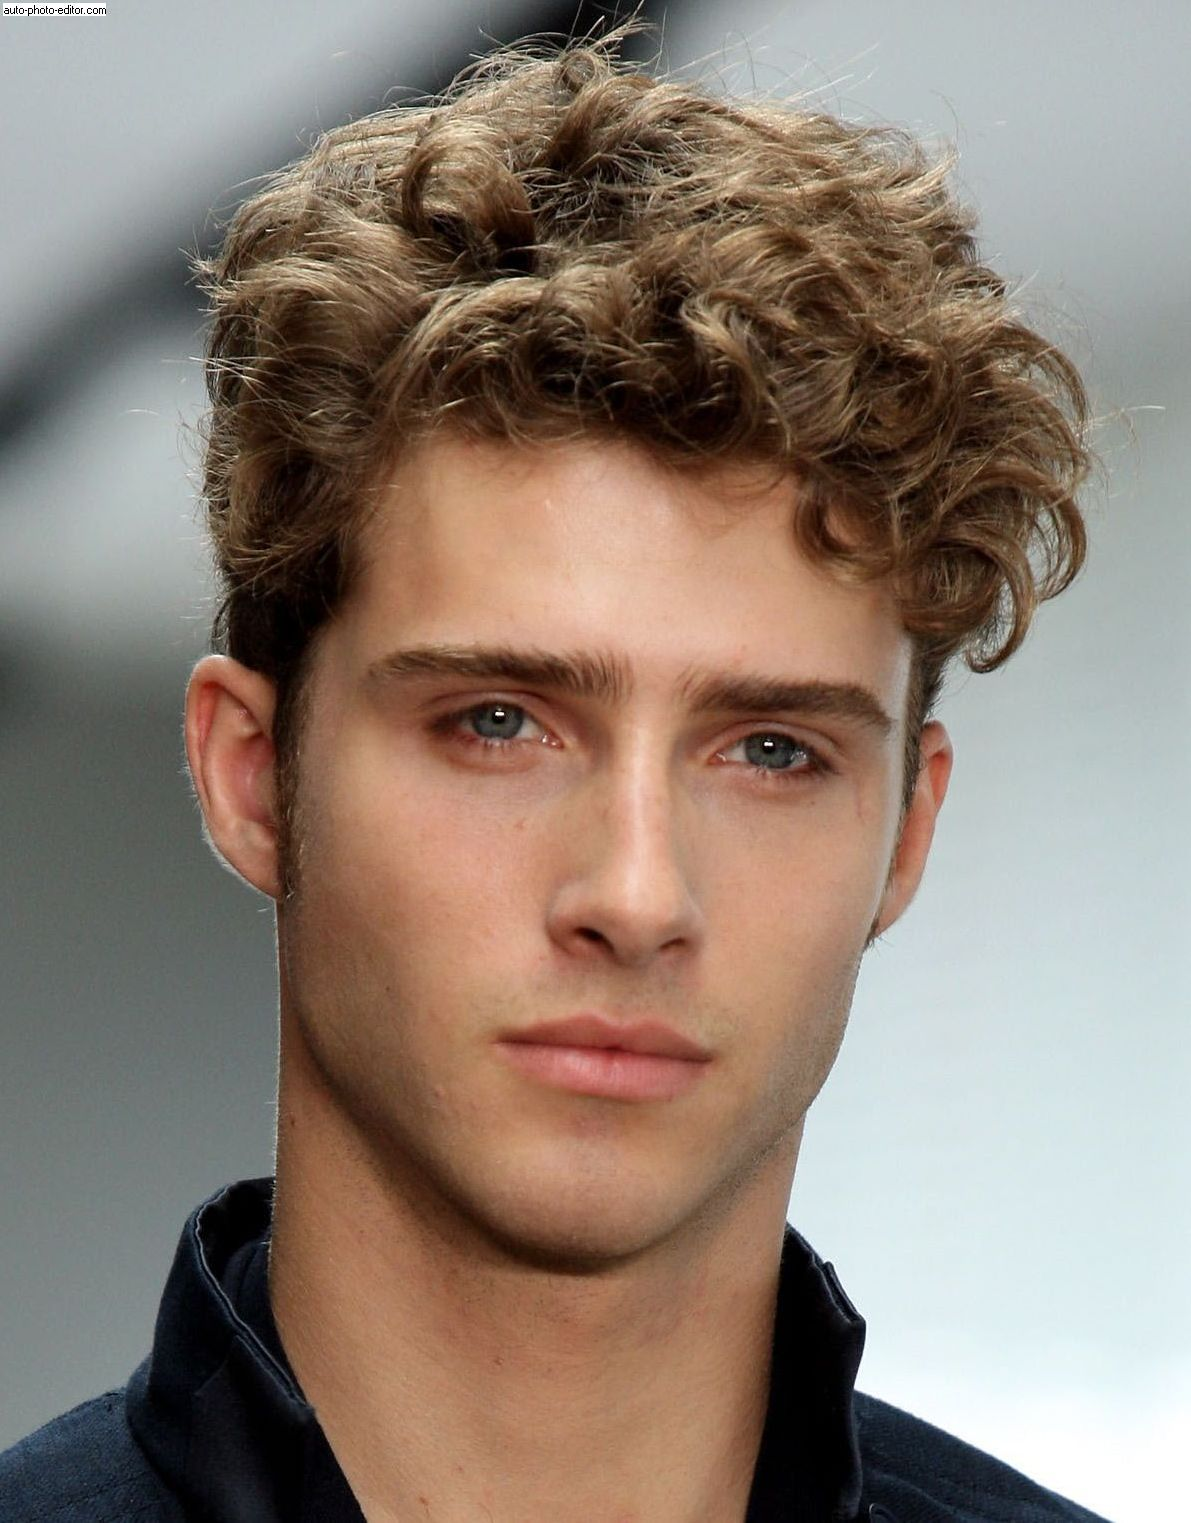 Curly Hairstyles For Men Curly hairstyles, Curly and